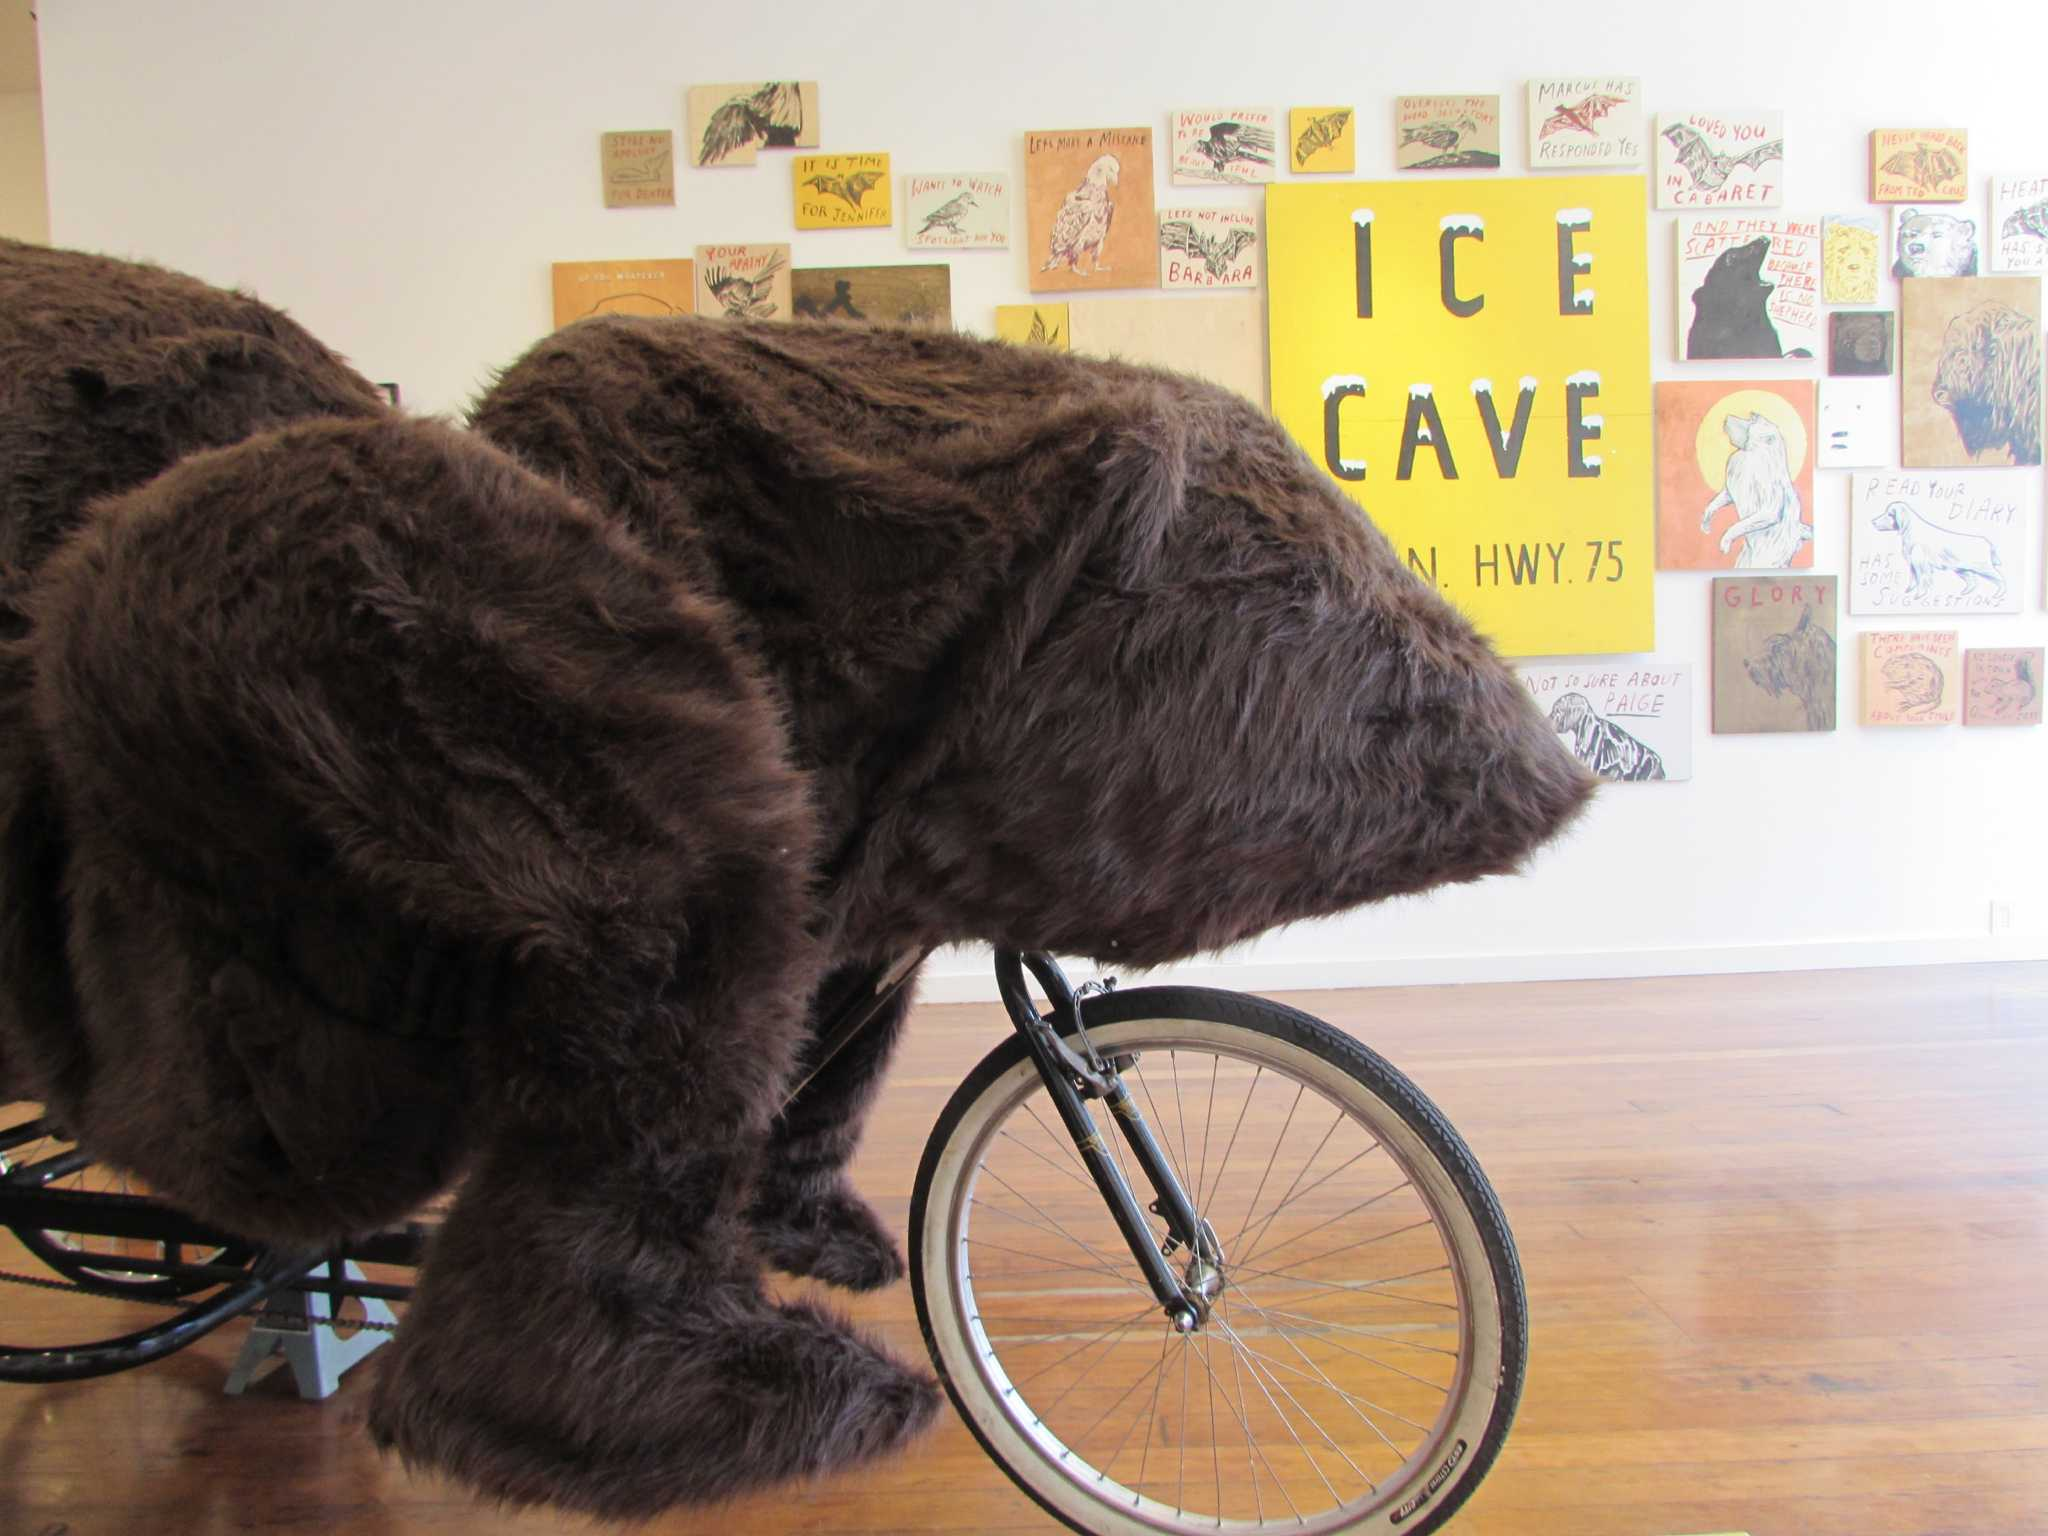 Unbearably fun: We rode the Dave Eggers bear pedicab in Hayes Valley